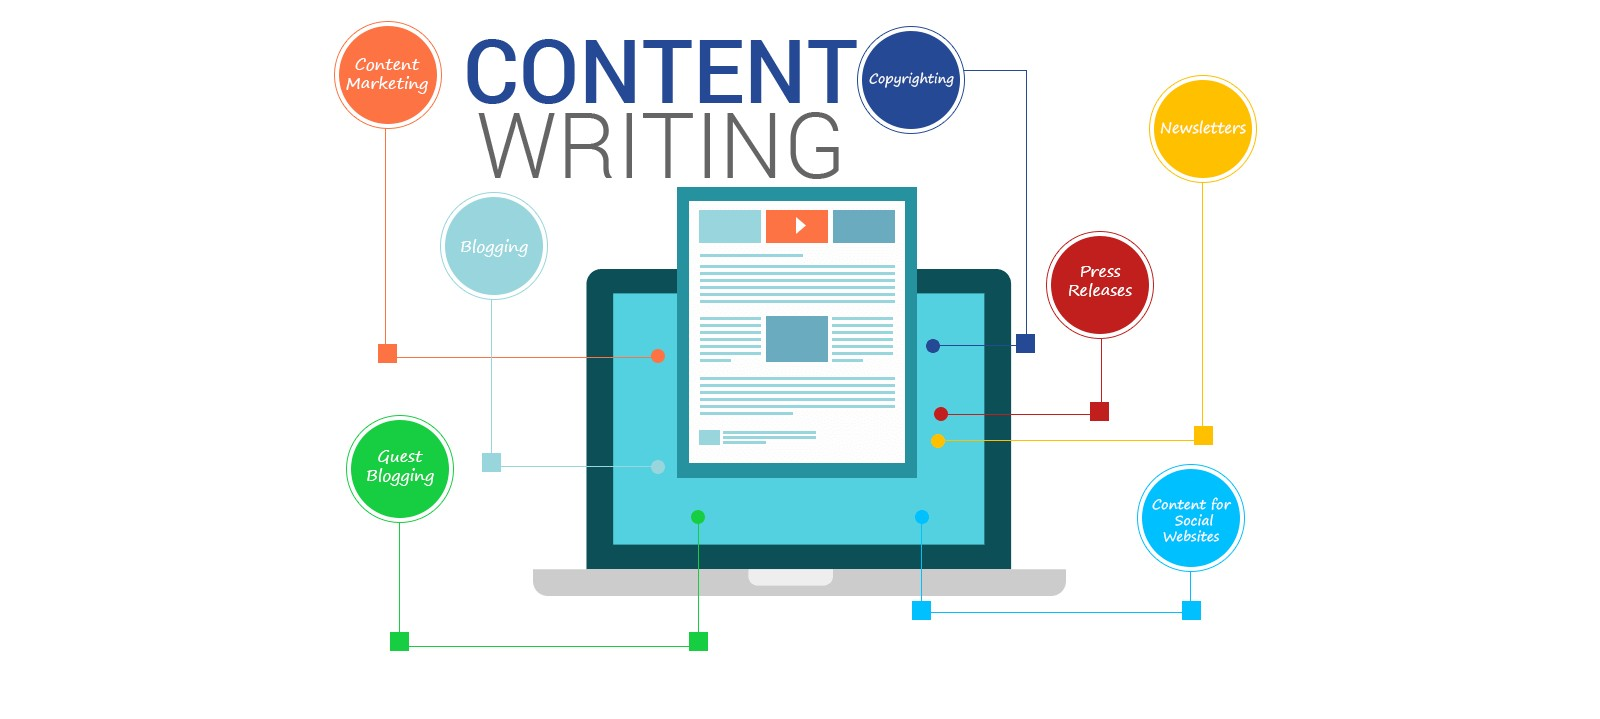 How-To-Write-Content-On-The-Website-To-Increase-Purchase-Contact